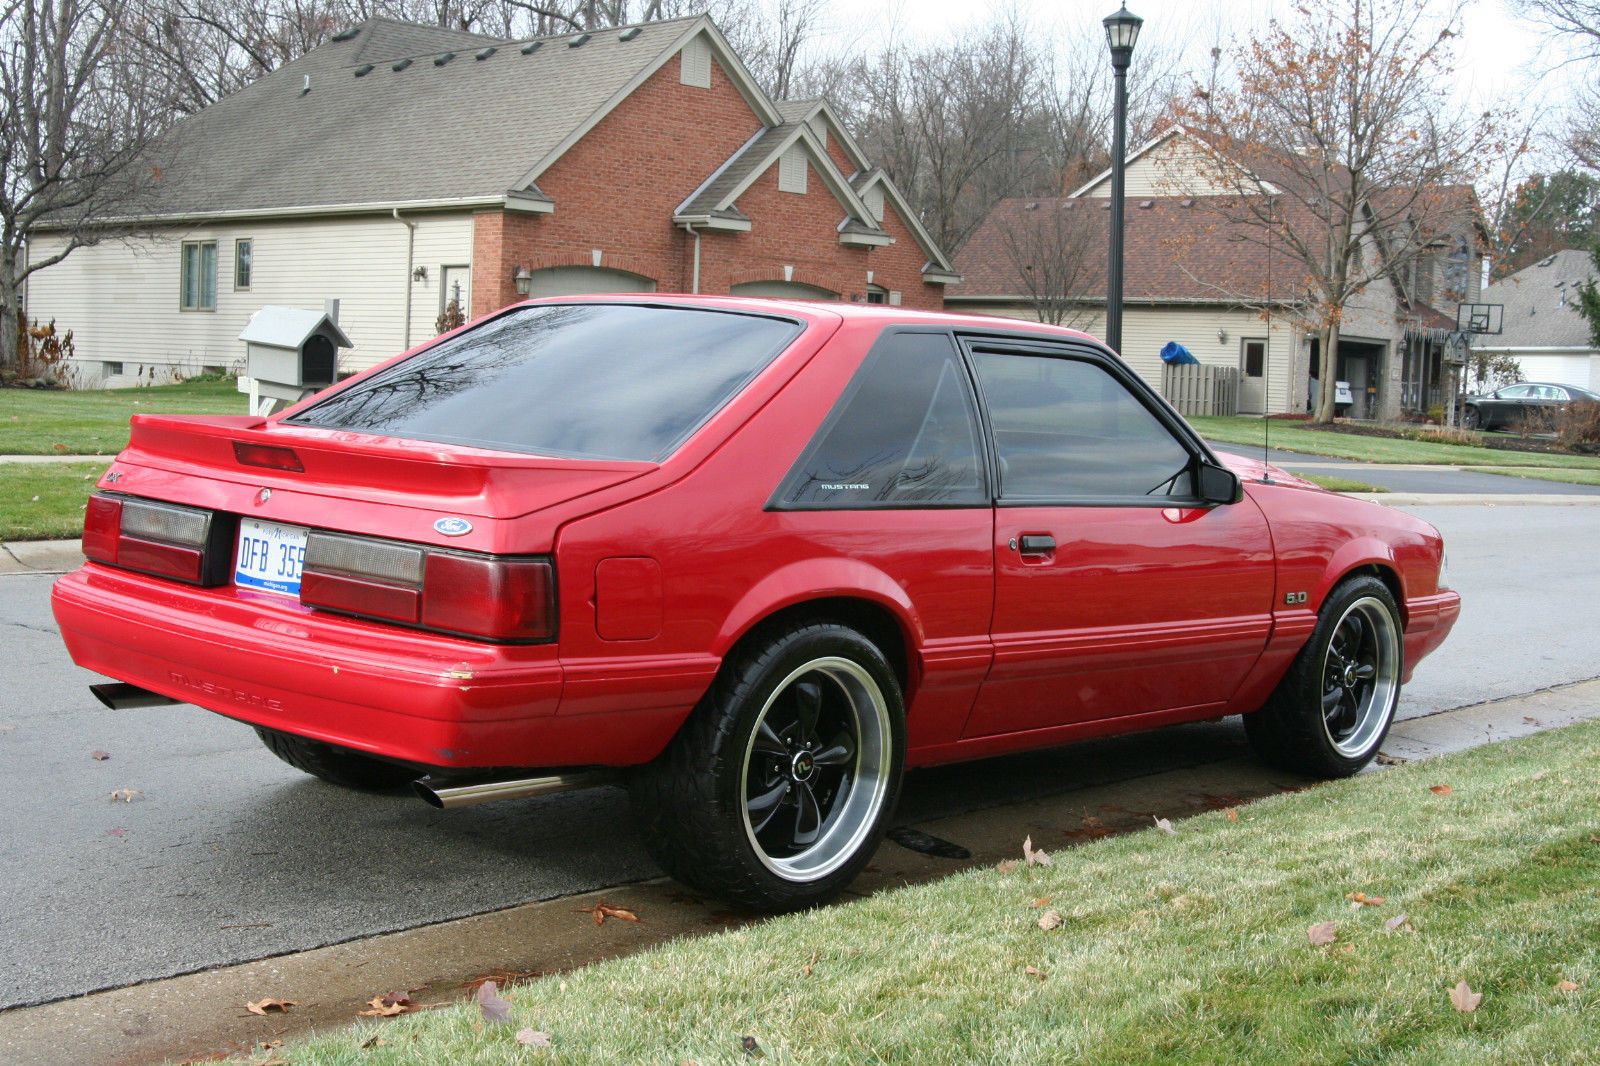 1990 MUSTANG LX 347 W 5 SP VORTEC BLW 509HP AT TIRE